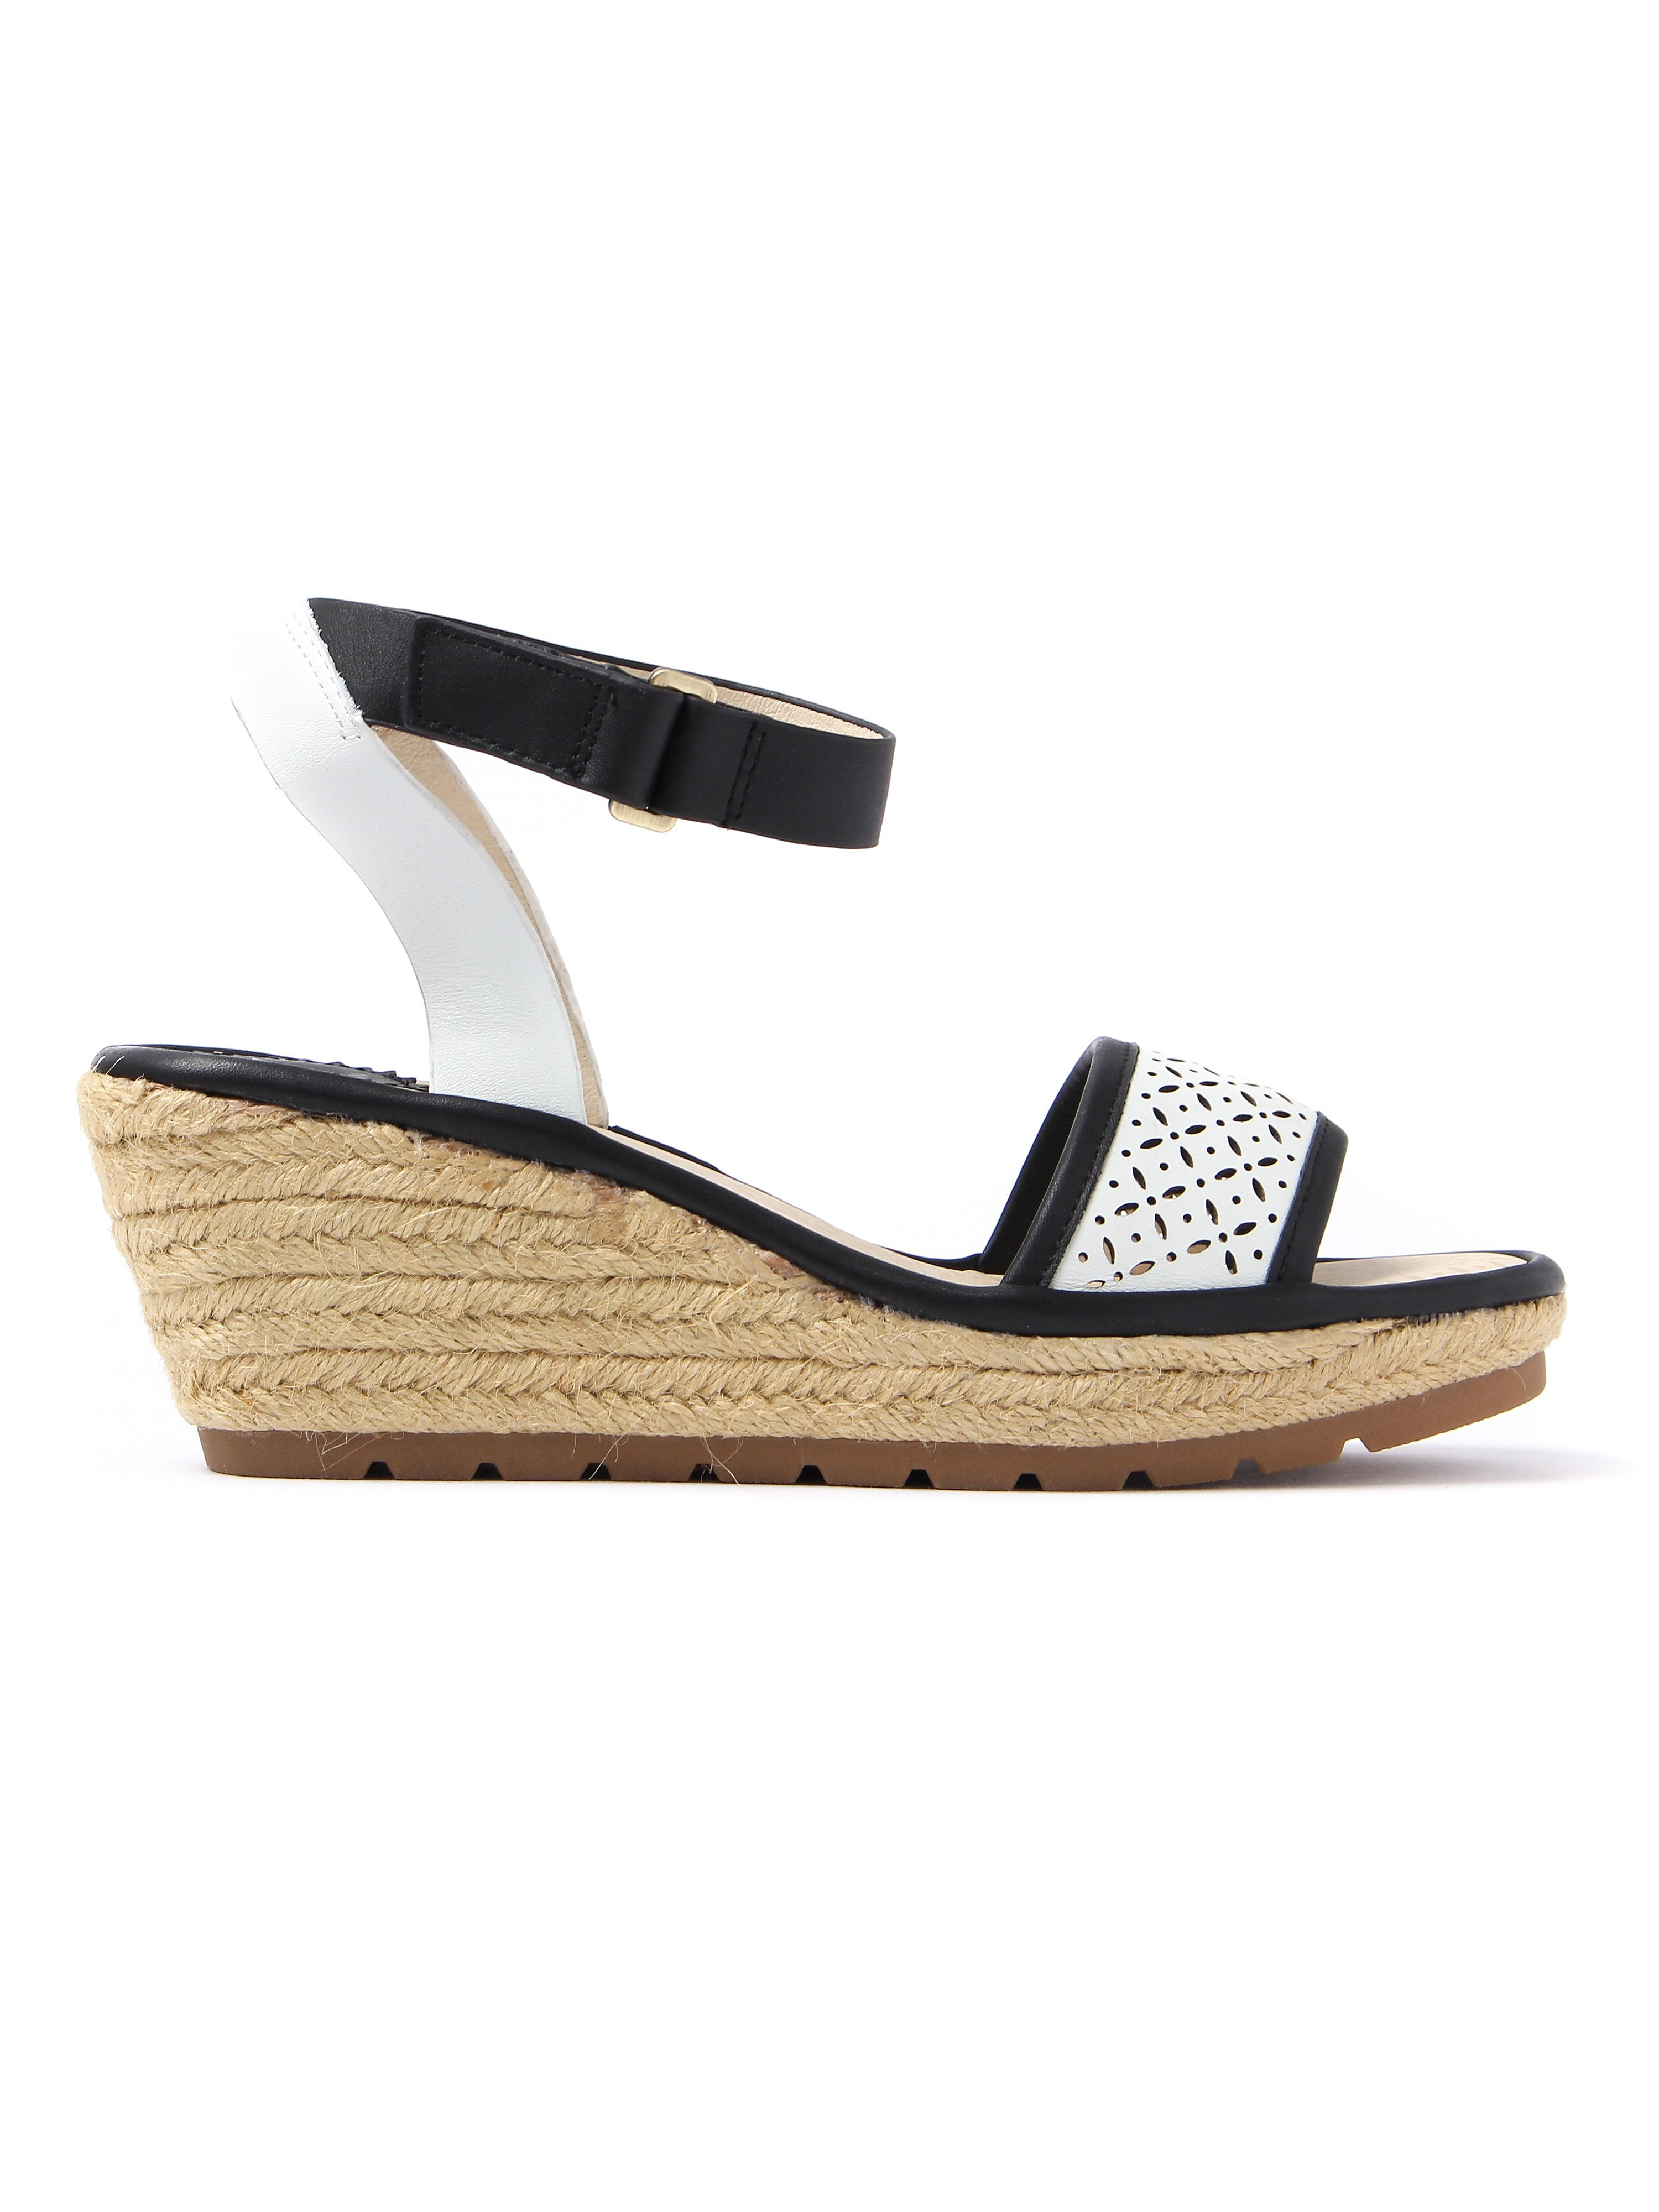 Fly London Women's Ekal Leather Laser Cut Ankle Strap Sandal - Black & Off White